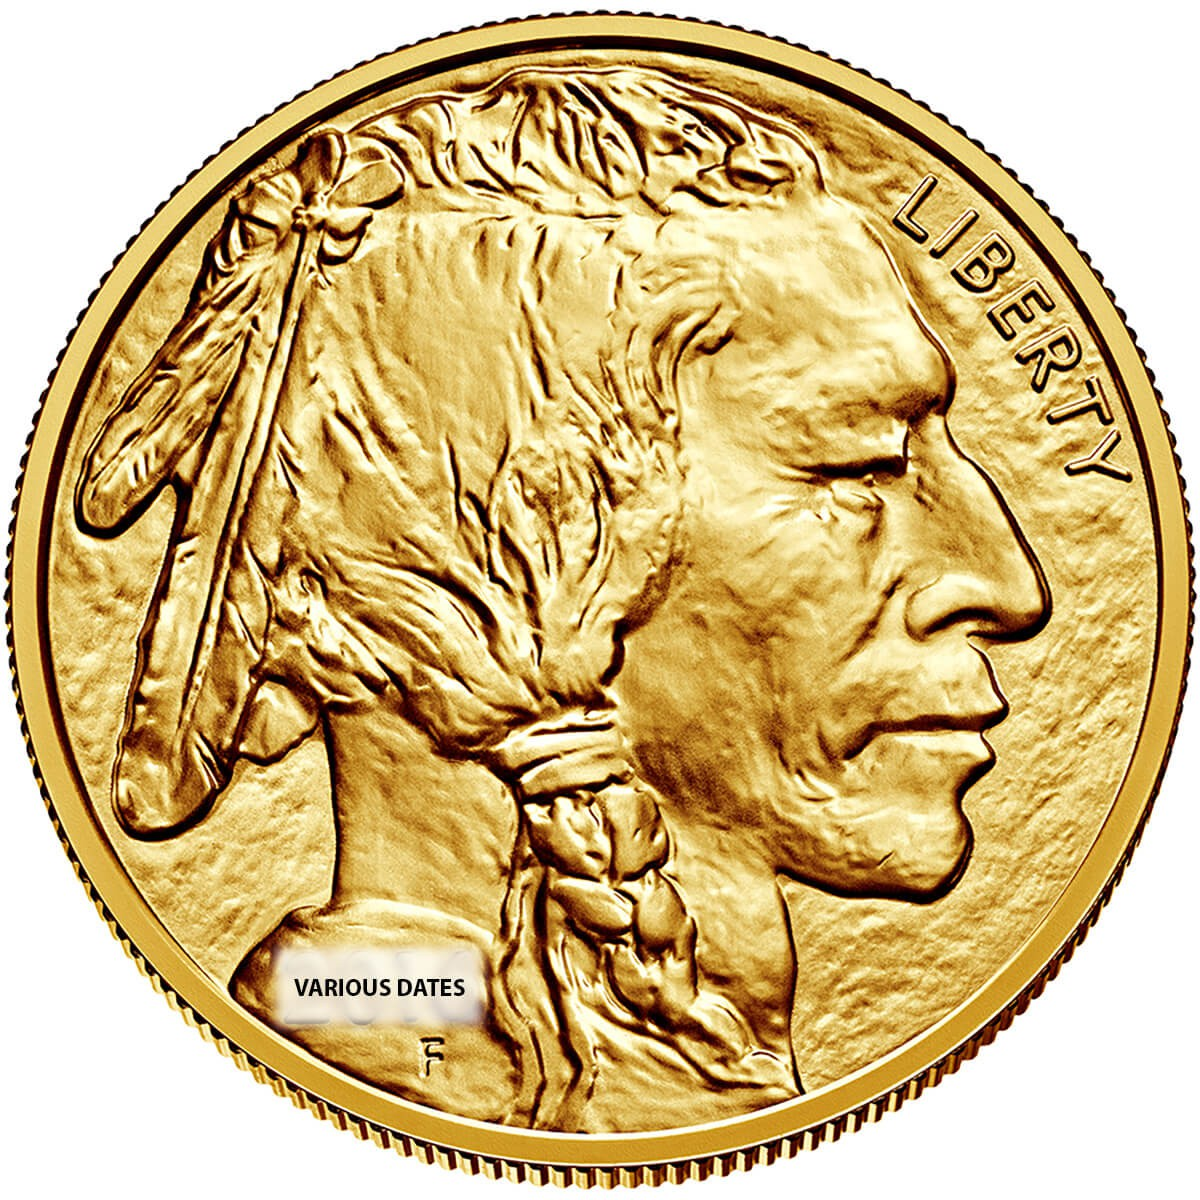 1 Ounce Gold American Buffalo Back Dated